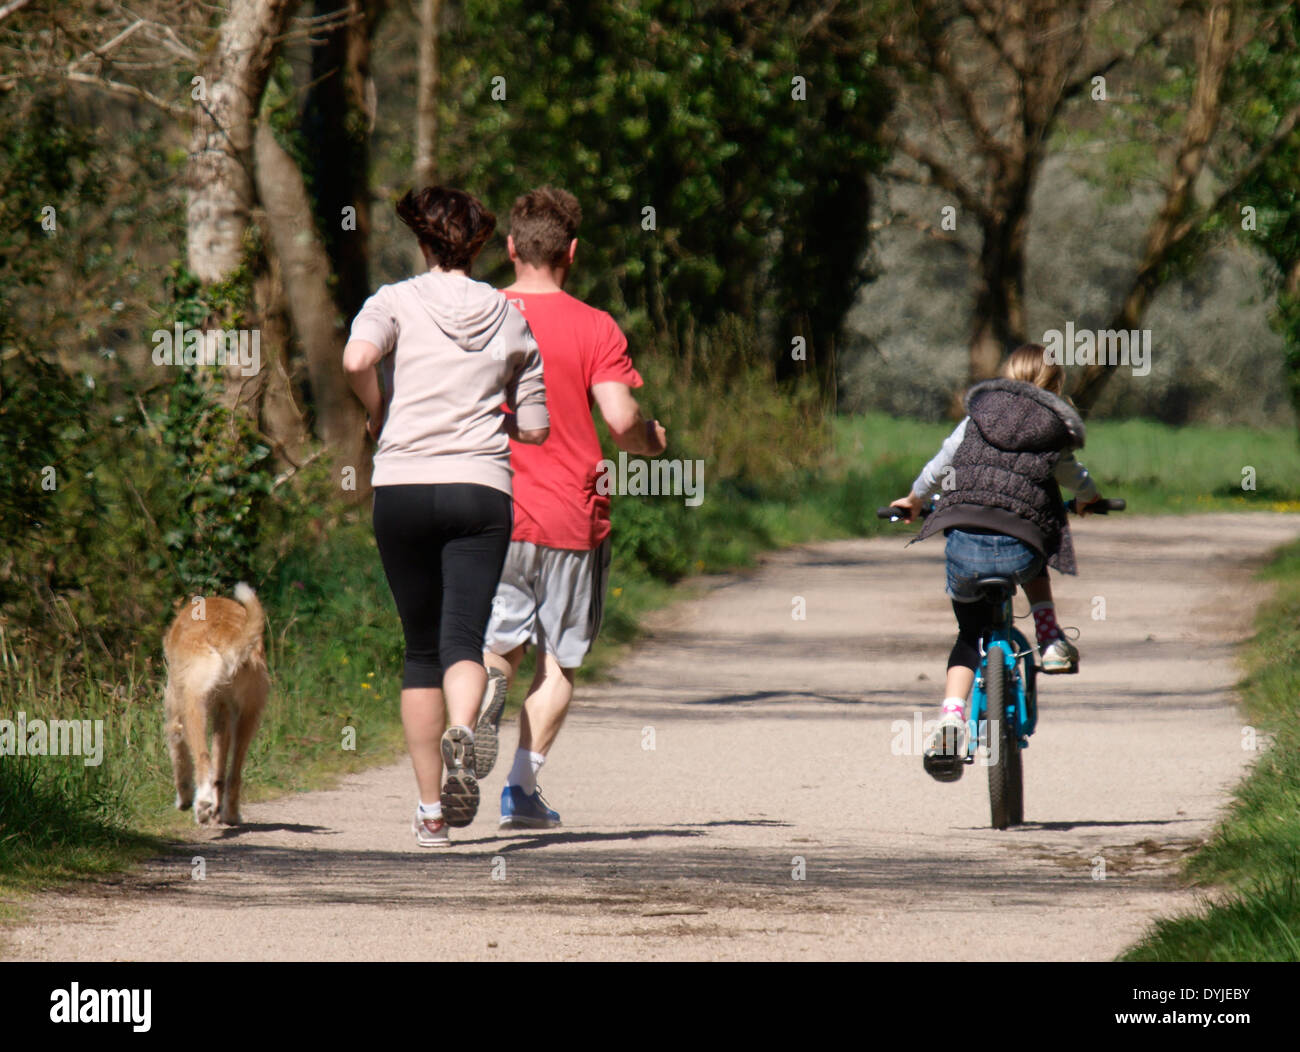 Family keeping fit together on the Camel trail between Wadebridge and Bodmin, Cornwall, UK - Stock Image